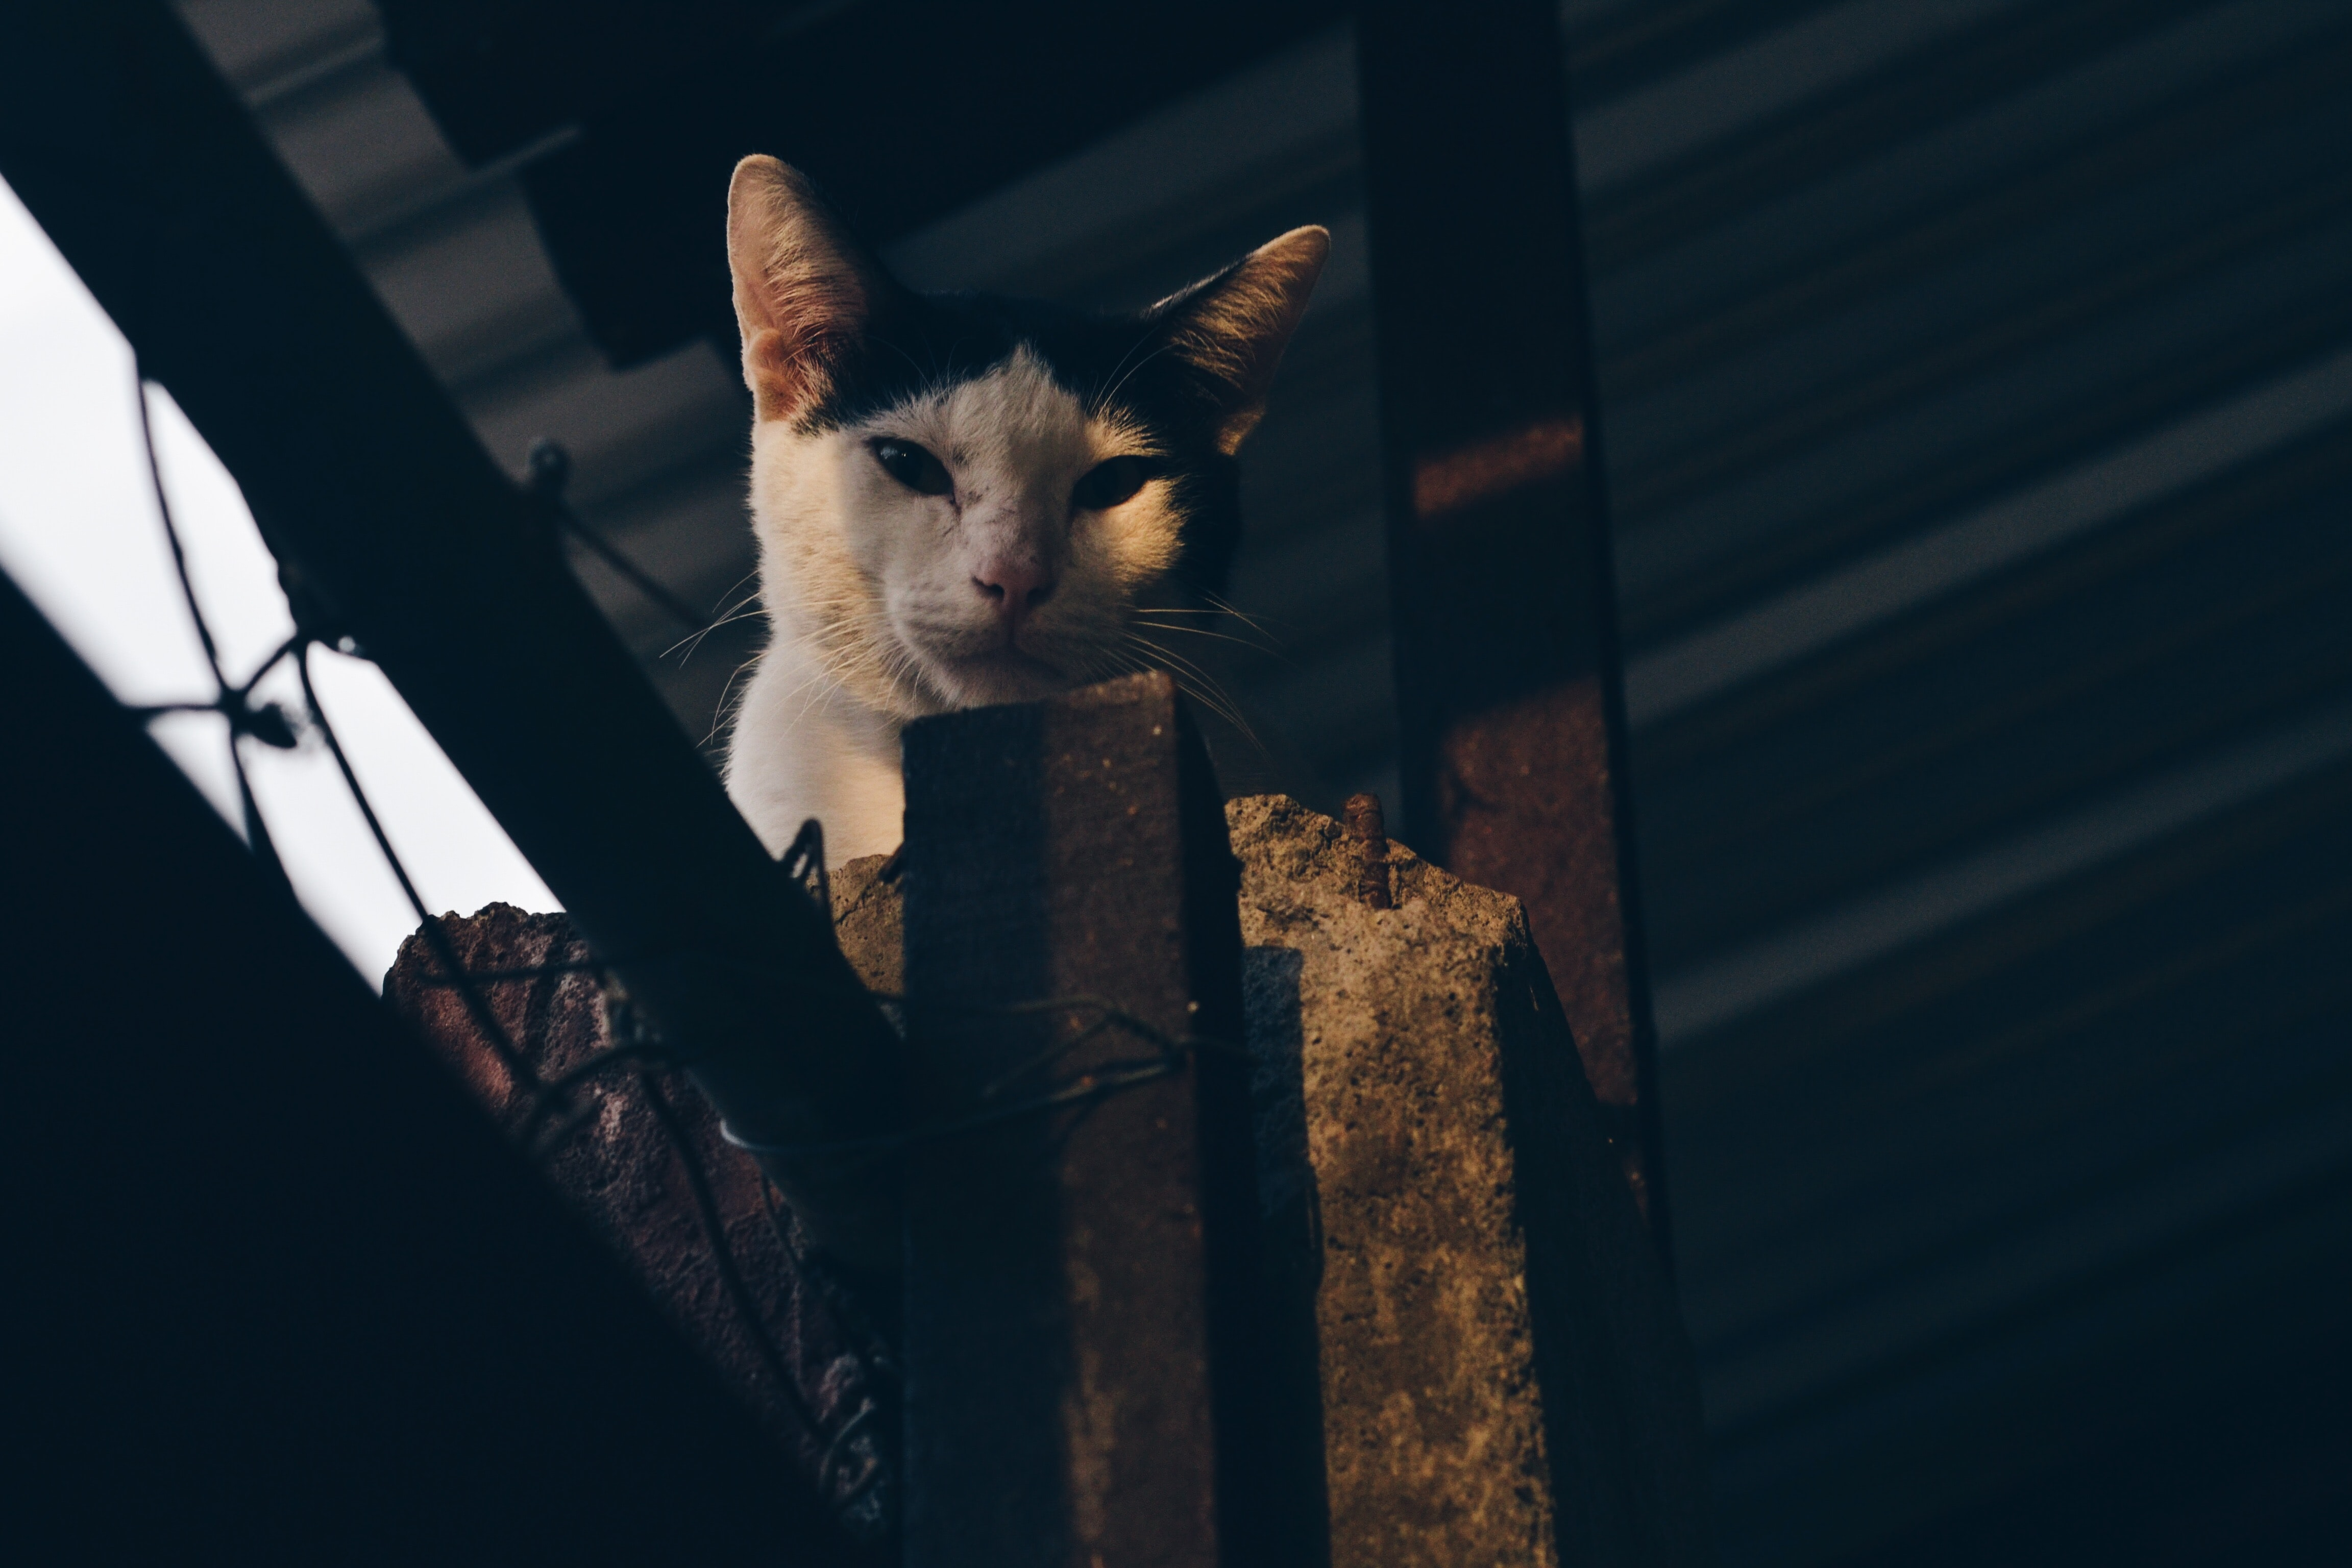 A cat sitting on a concrete fence looks down at the camera